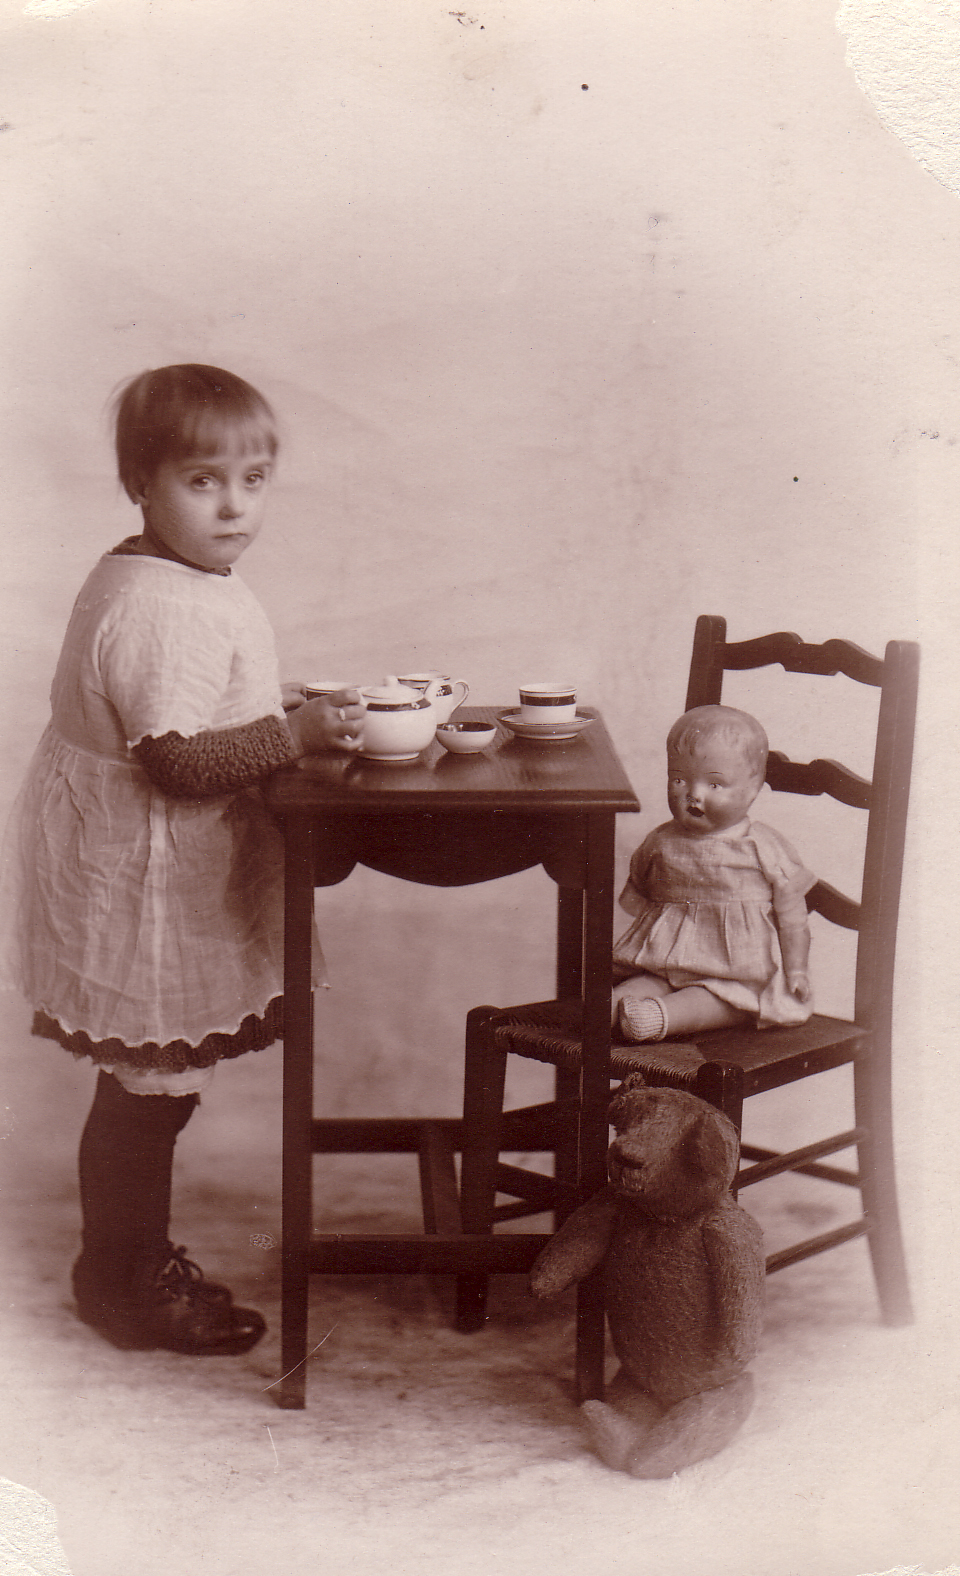 Studio Portrait Young Girl With Tea Set And Toys 1926